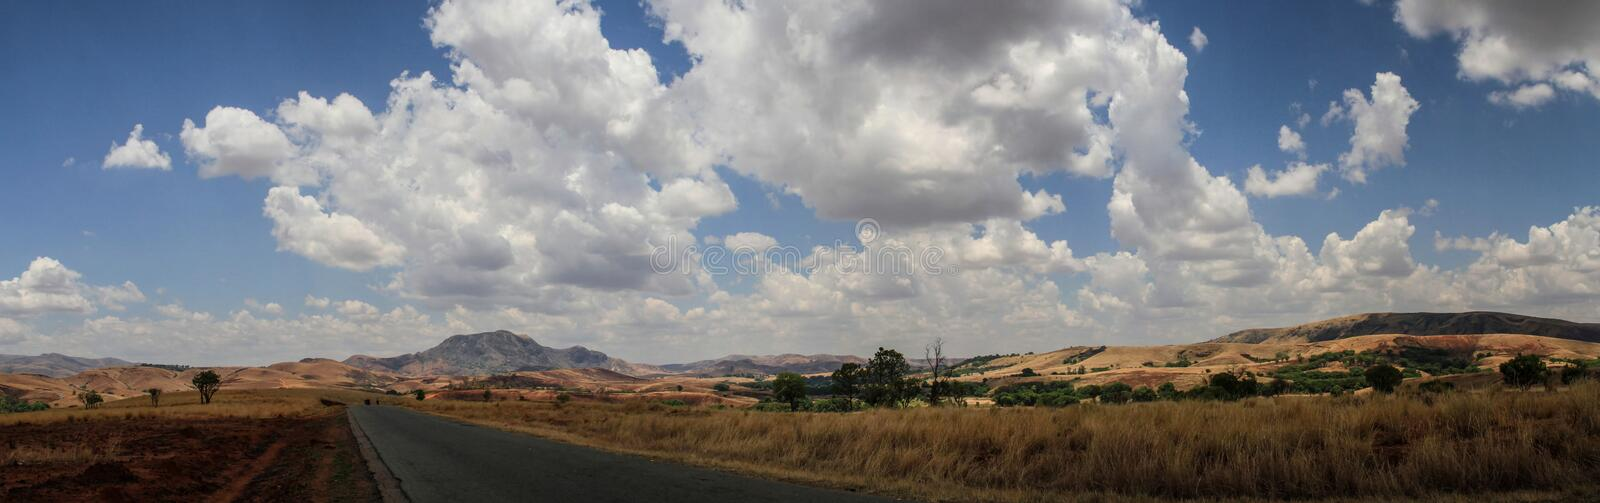 On the way to Diego Suarez, Northern Madagascar stock photography